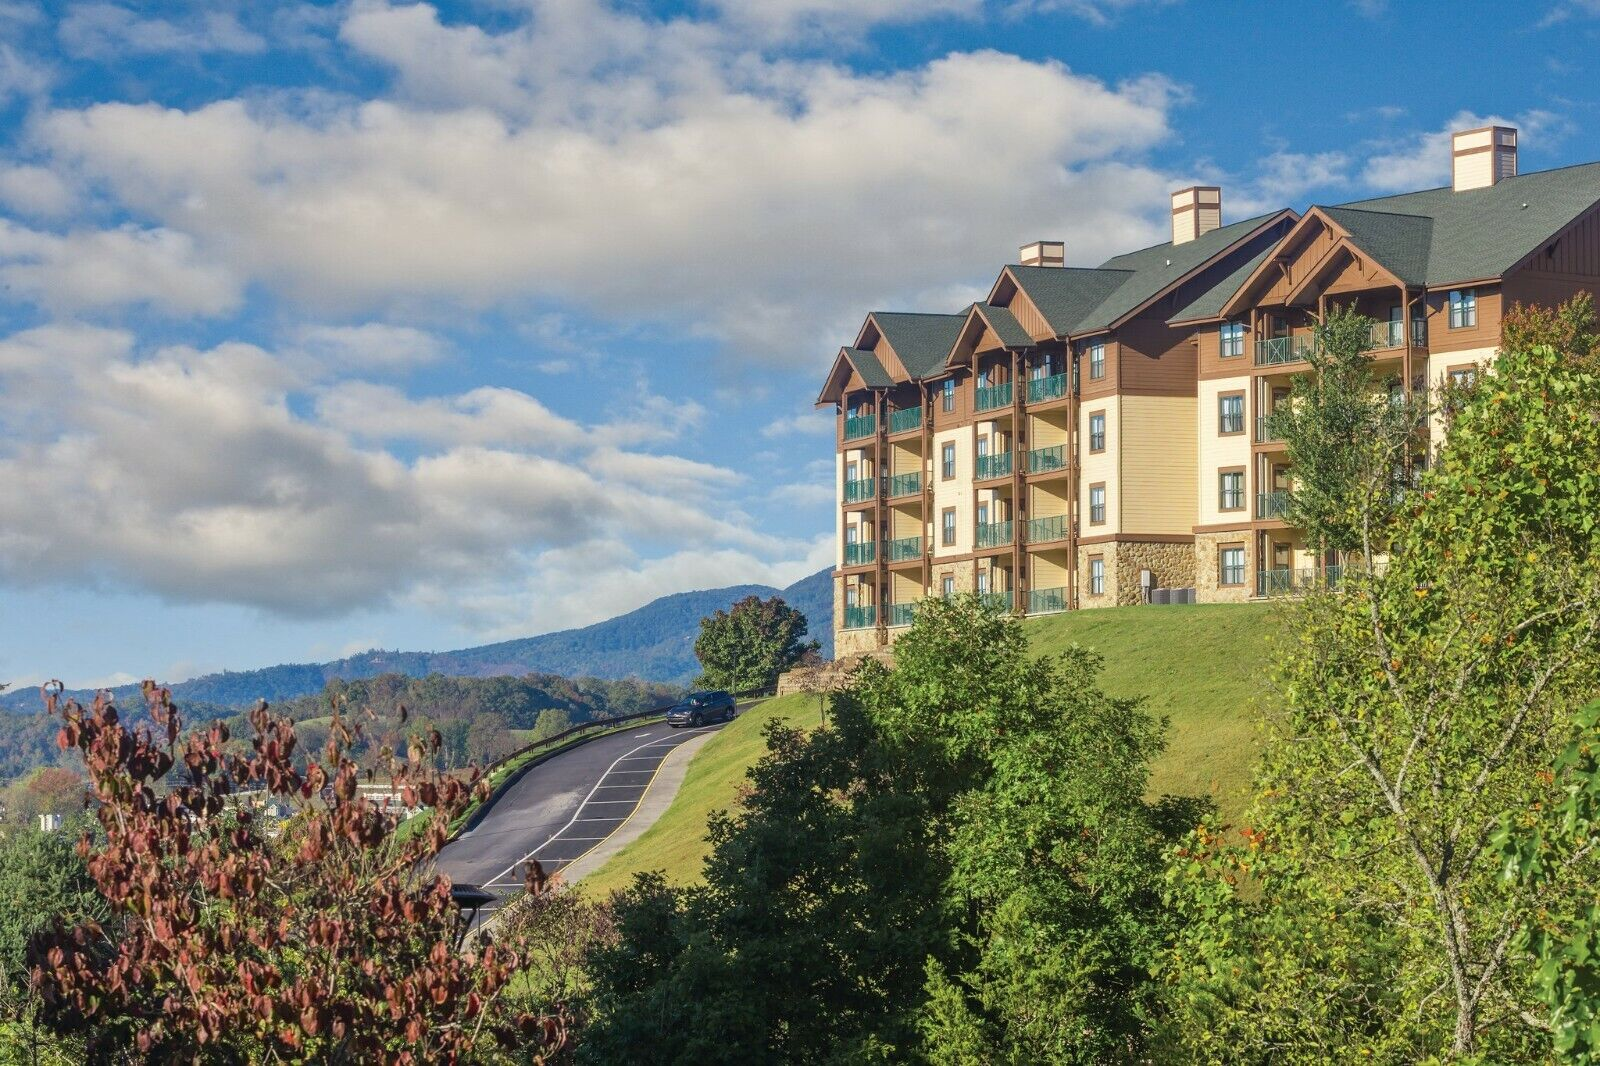 WYNDHAM SMOKY MOUNTAINS 84,000 ANNUAL POINTS 84,000 CURRENT POINTS - $800.00